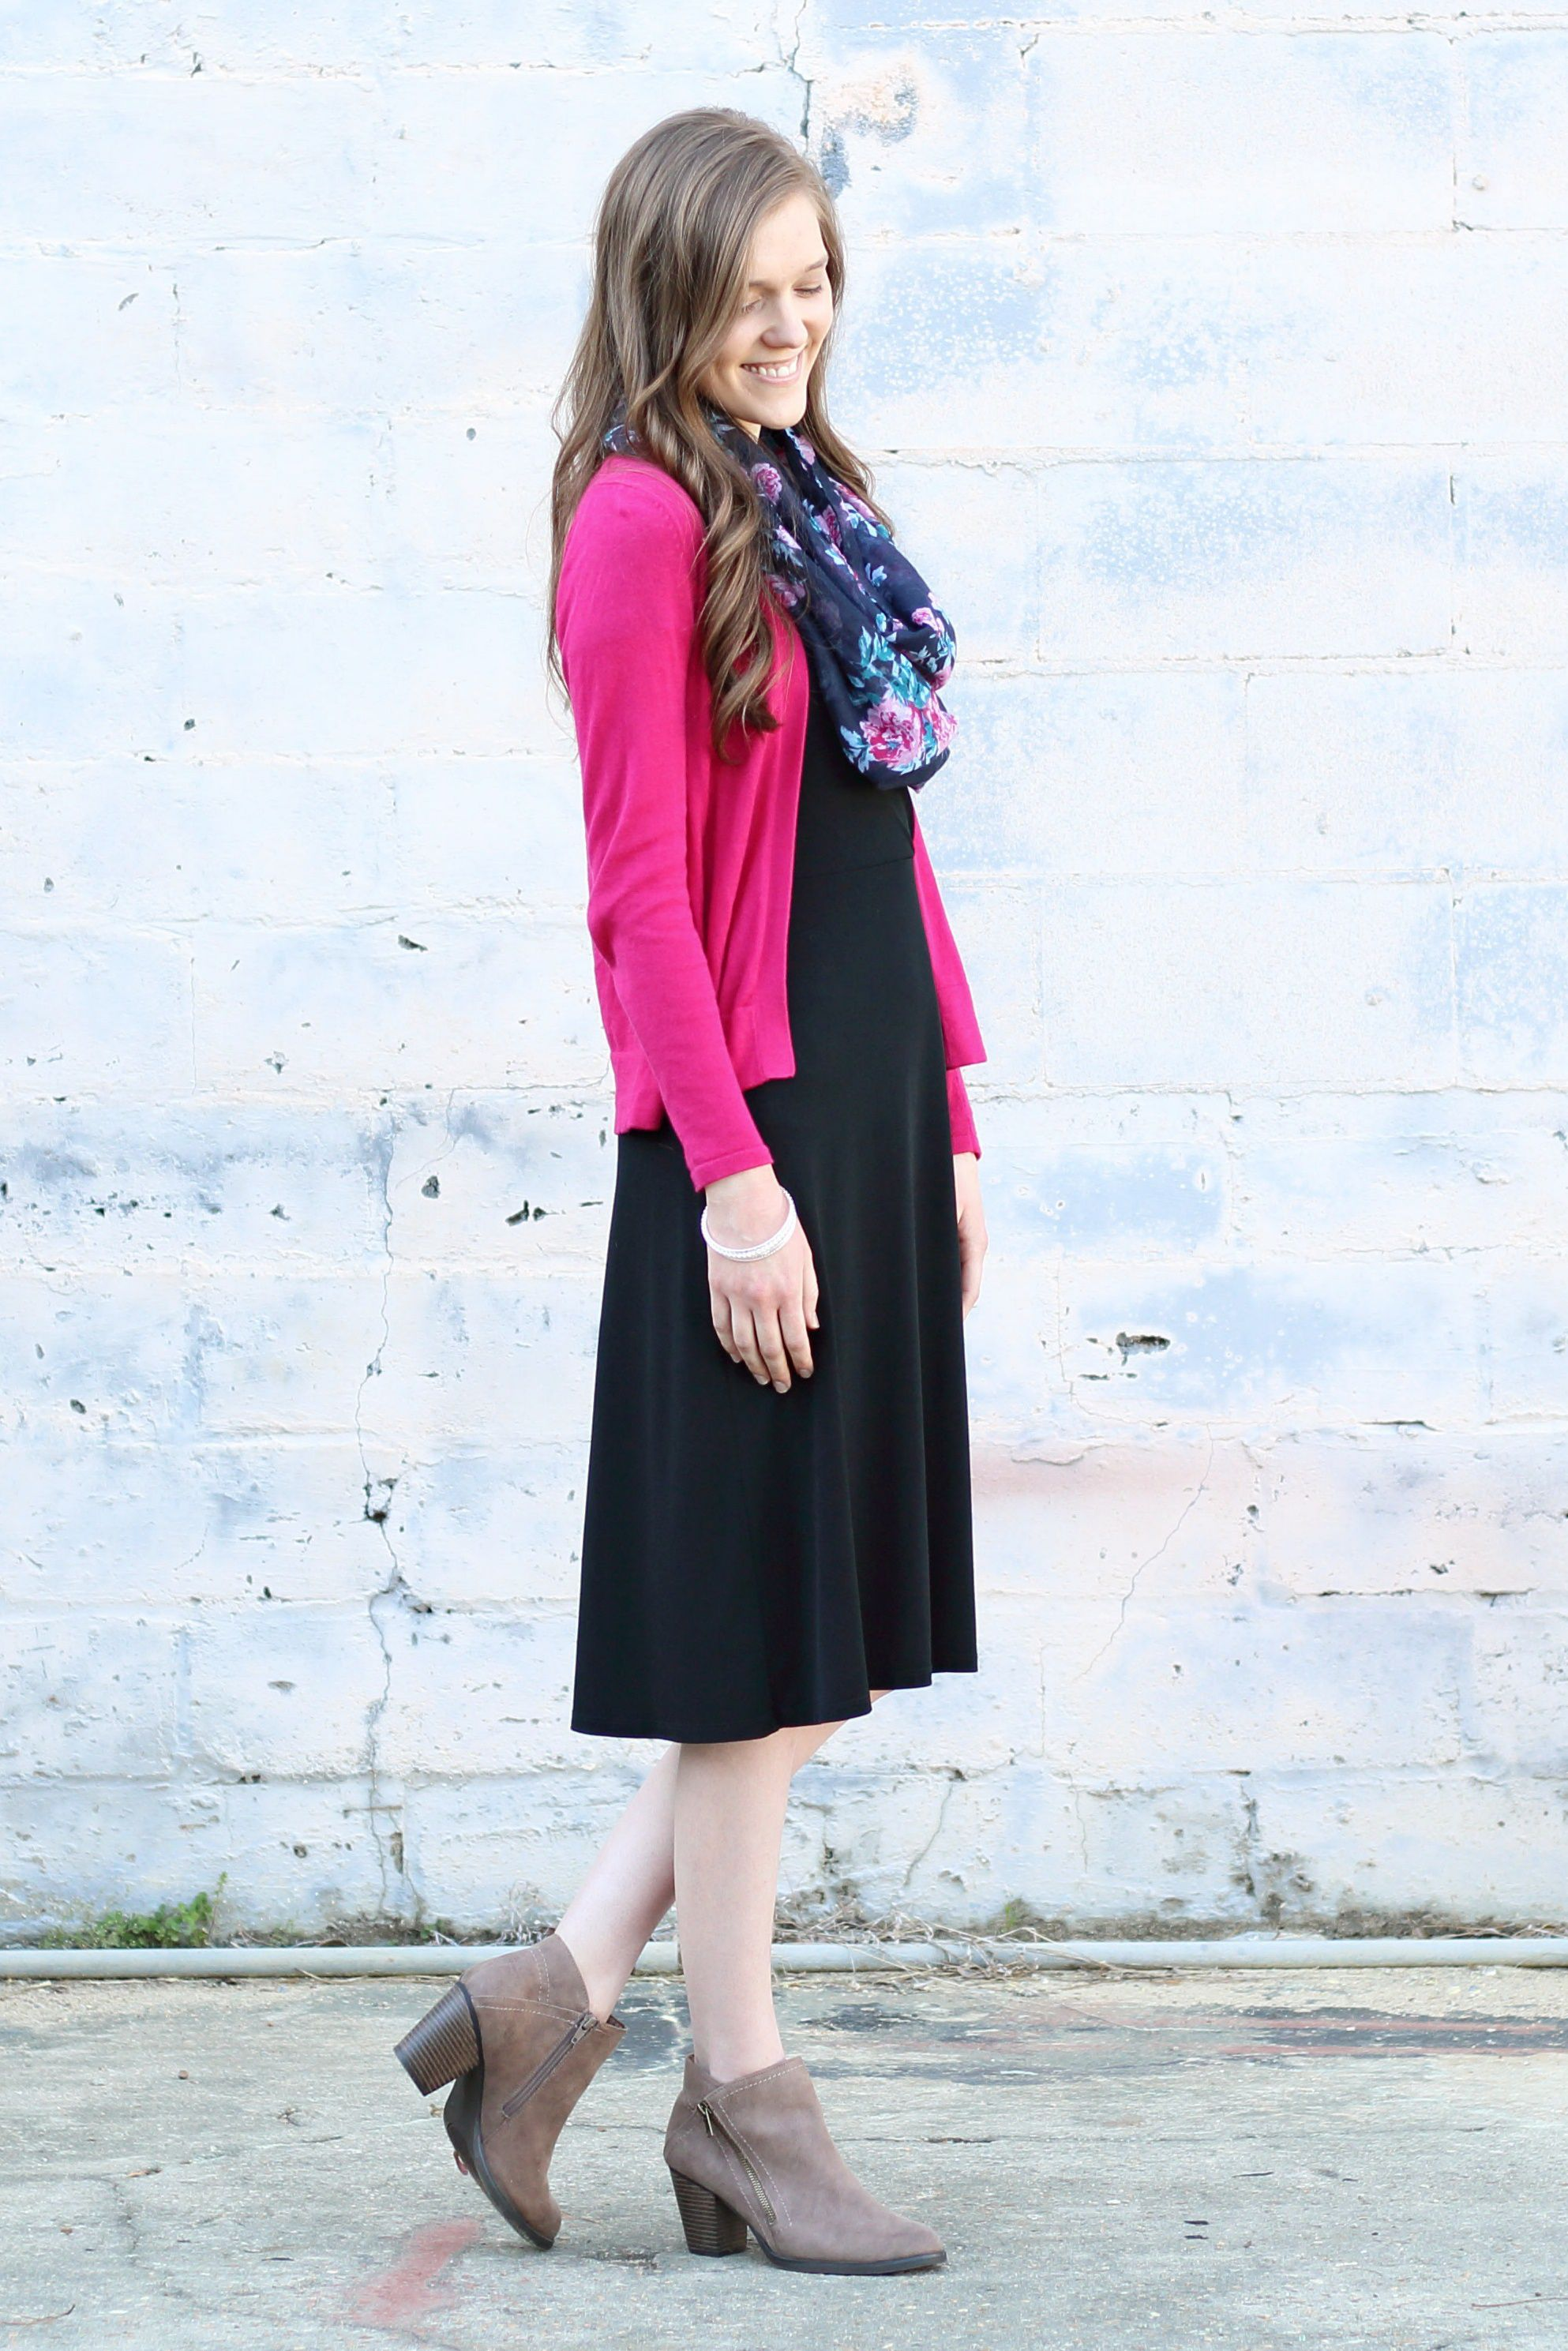 e1009bcf32f Modest Outfit Idea for Church  Ankle Boots  Black Dress  Floral Scarf  Pink  Cardigan  Fall Style Inspiration  Classy  Comfy  Feminine  Modern  Cute